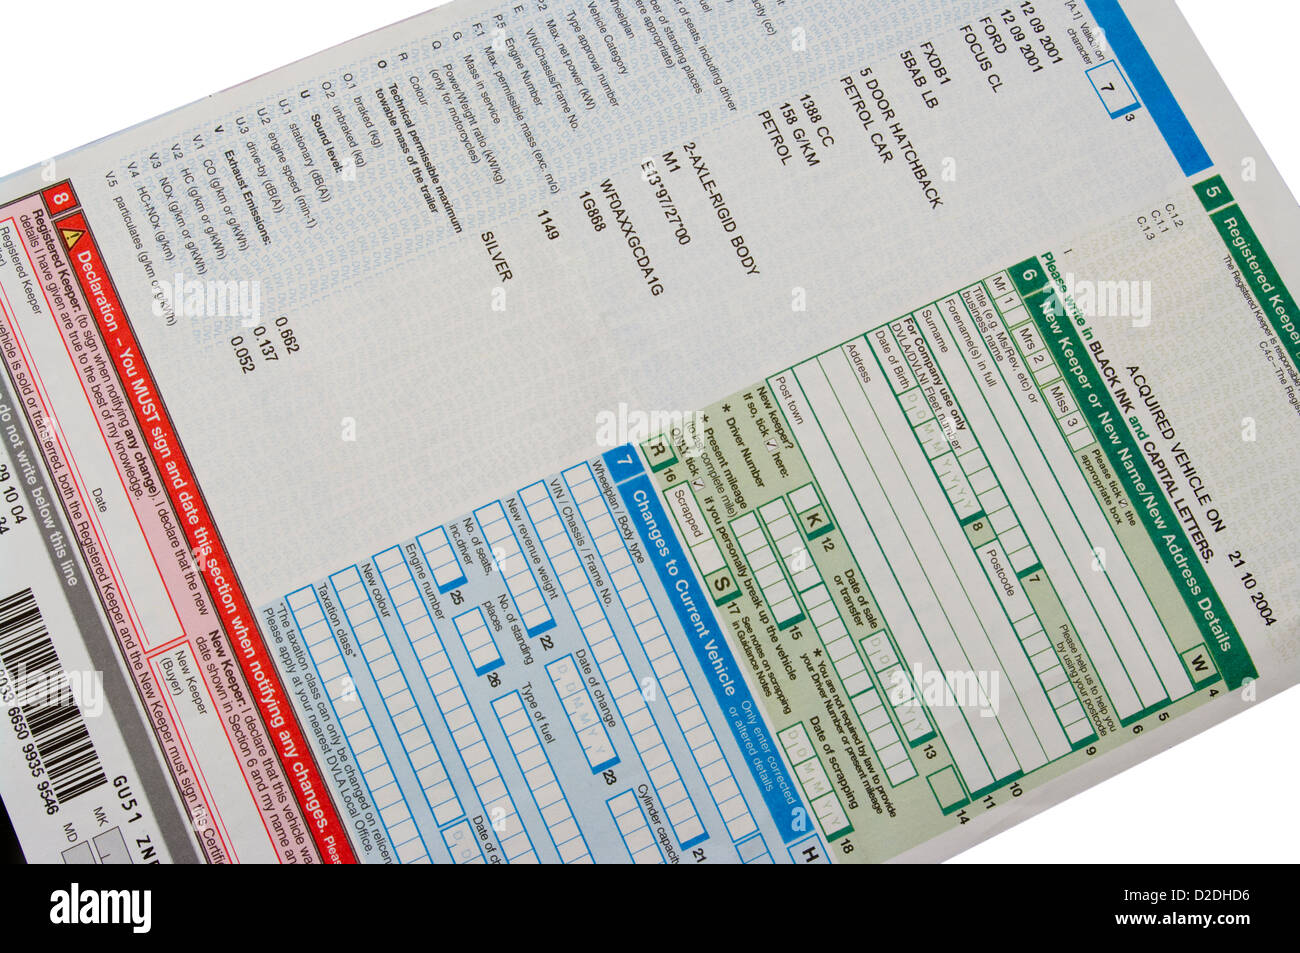 Dvla vehicle registration document with fictional details stock dvla vehicle registration document with fictional details xflitez Images